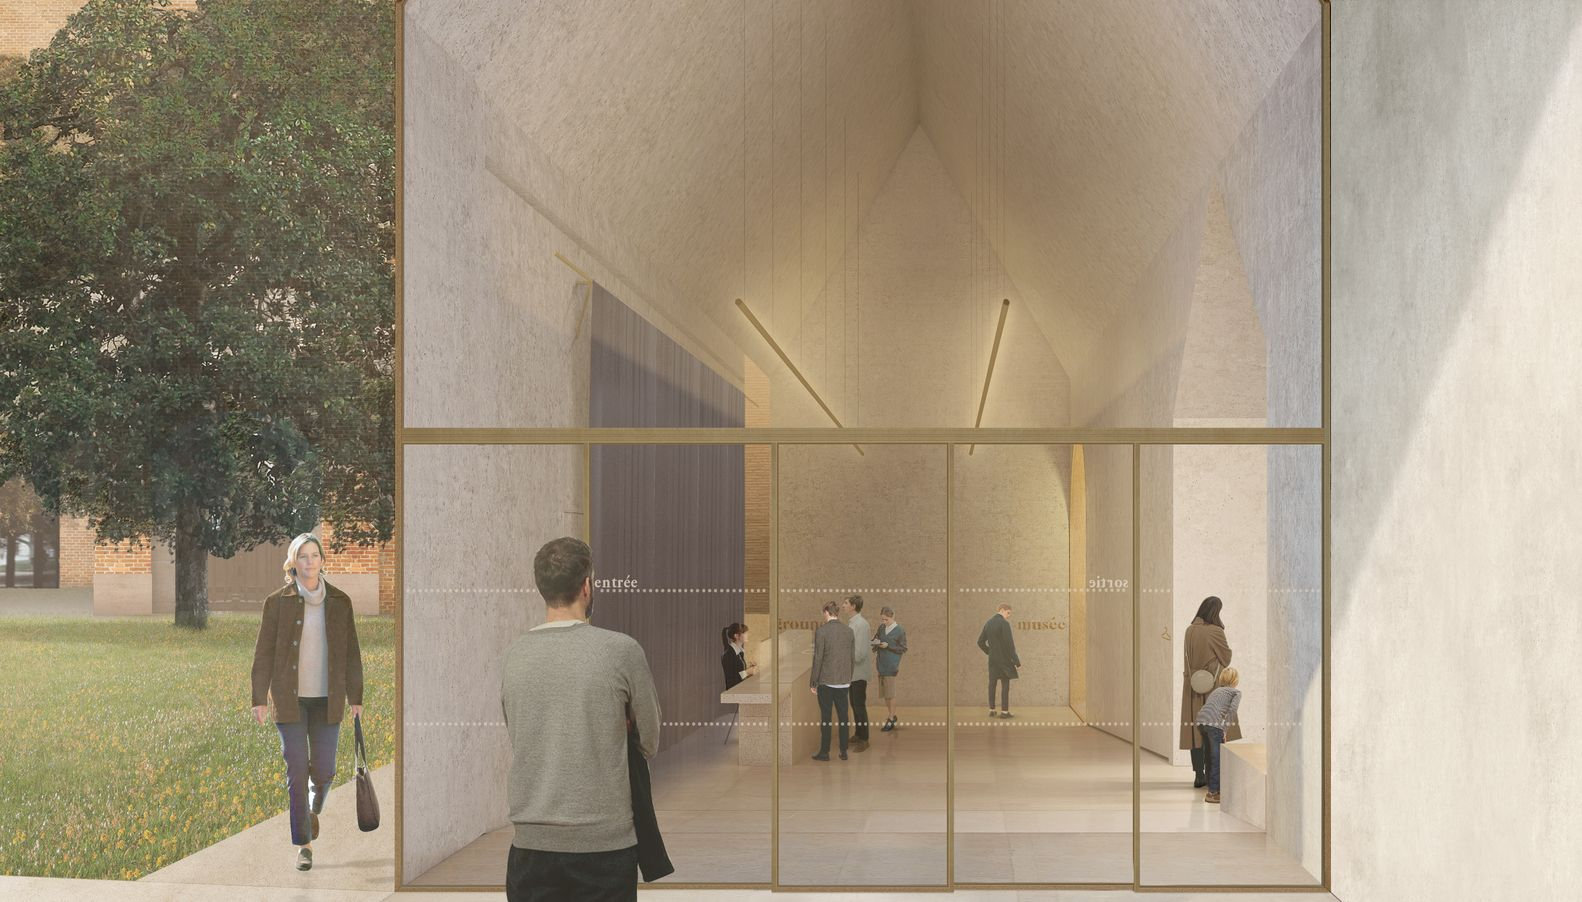 Gallery Of Aires Mateus Reveals Design For The Toulouse Fine Art Museum 3 Musee Art Et Toulouse